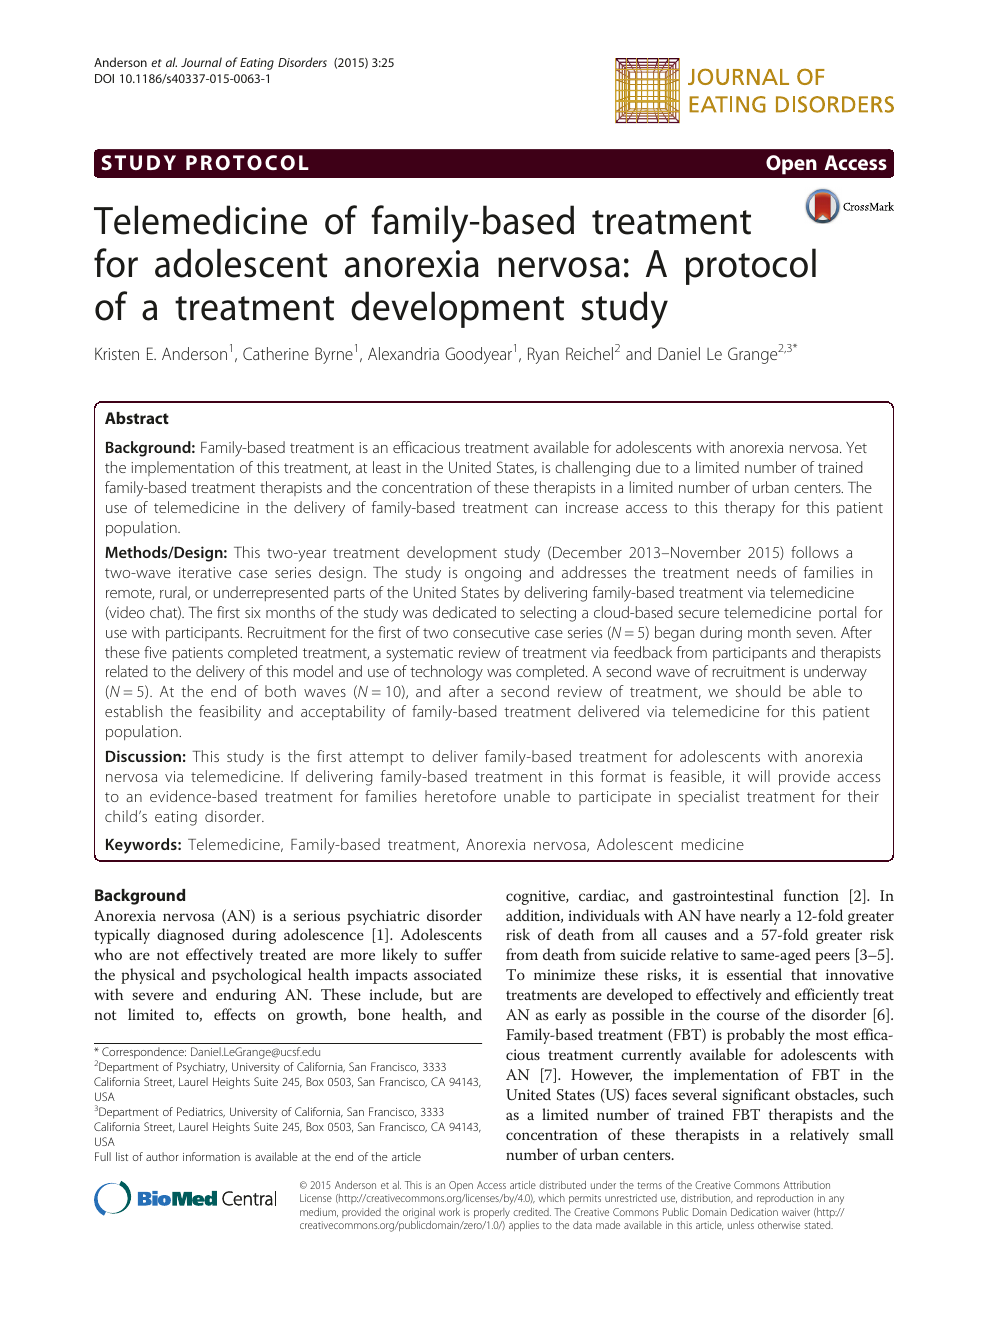 Telemedicine of family-based treatment for adolescent